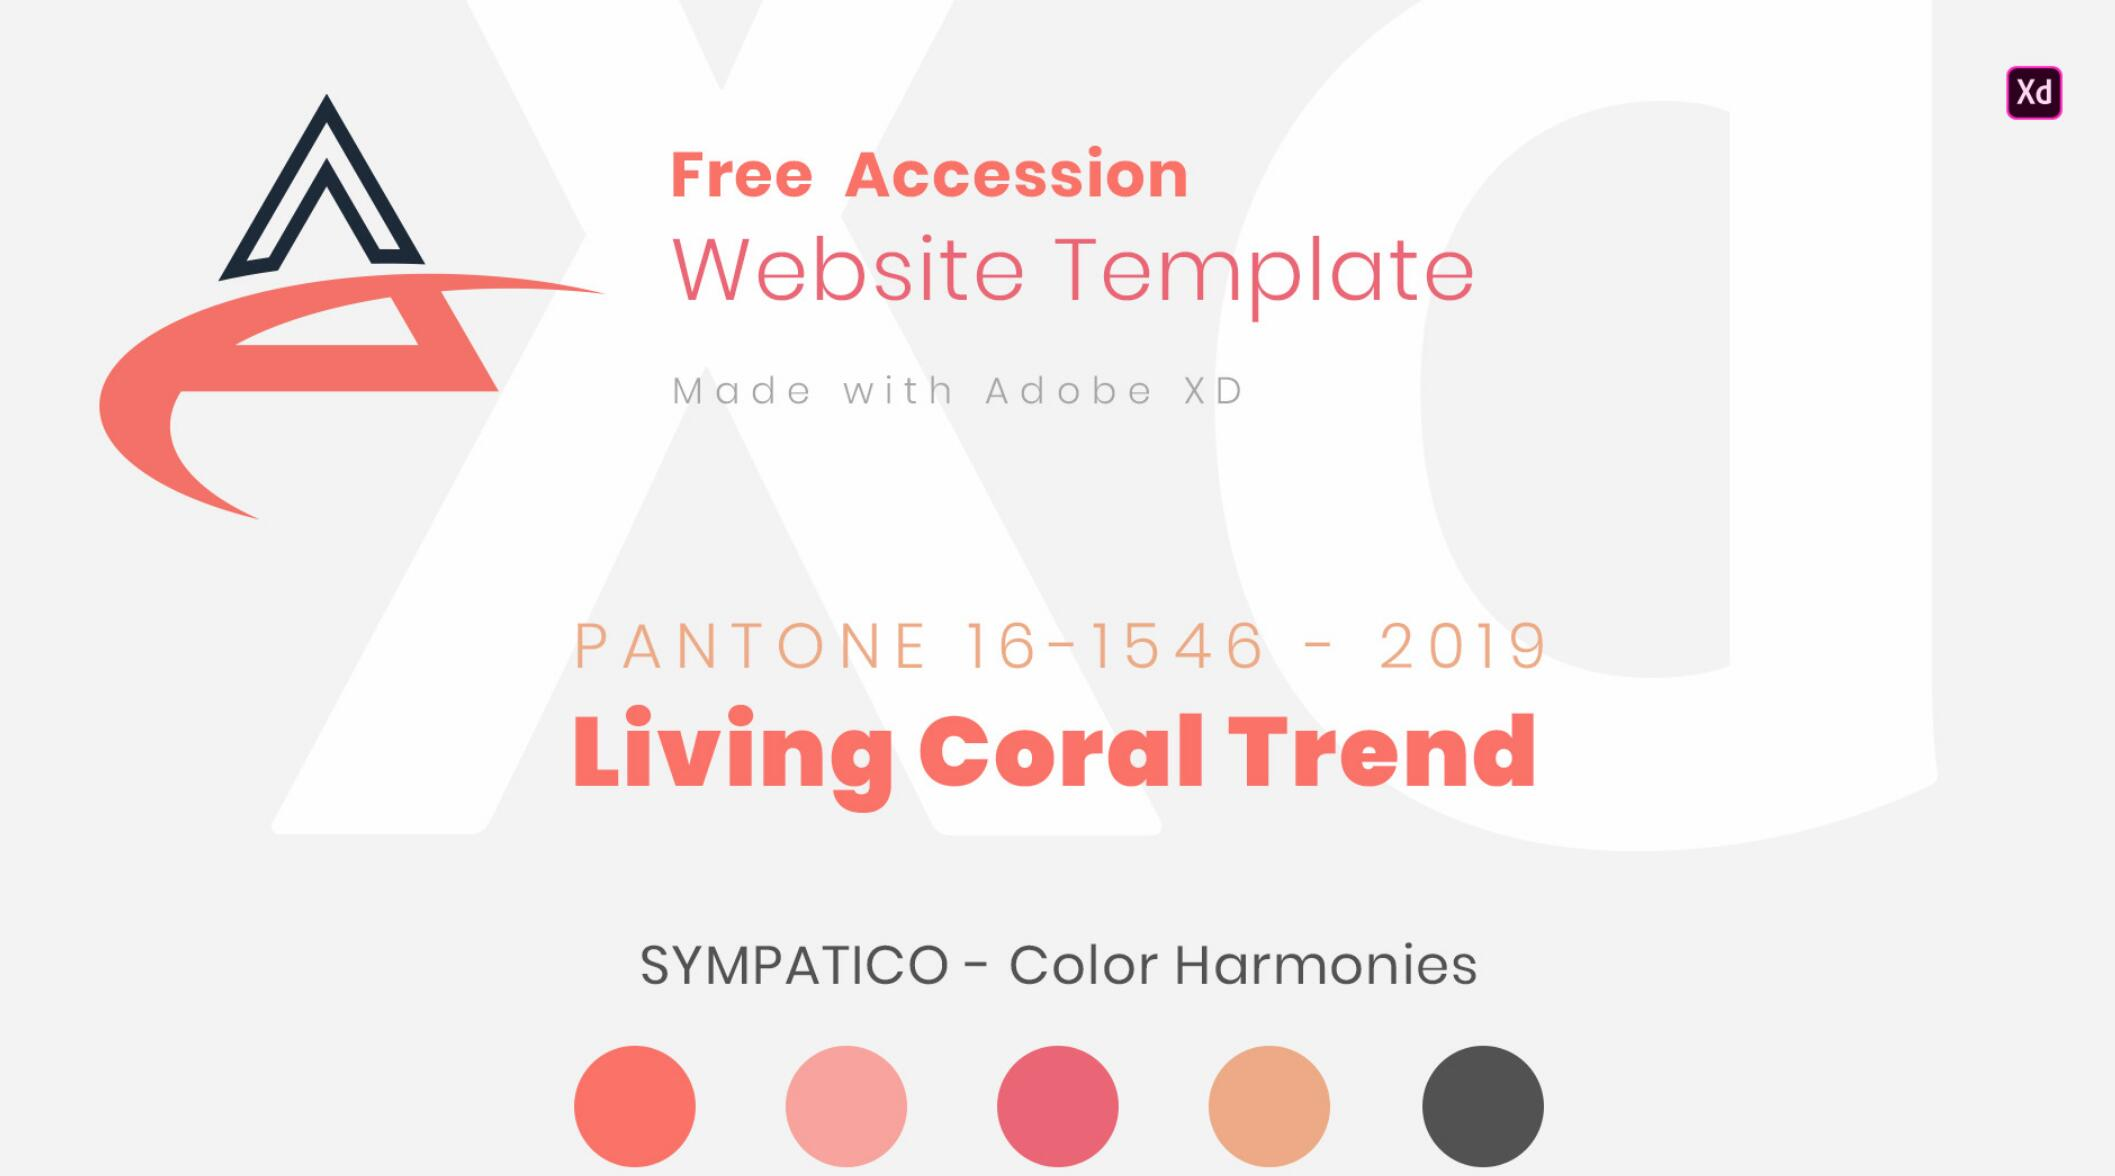 Free Accession - Responsive Website Template Pantone 2019 Color